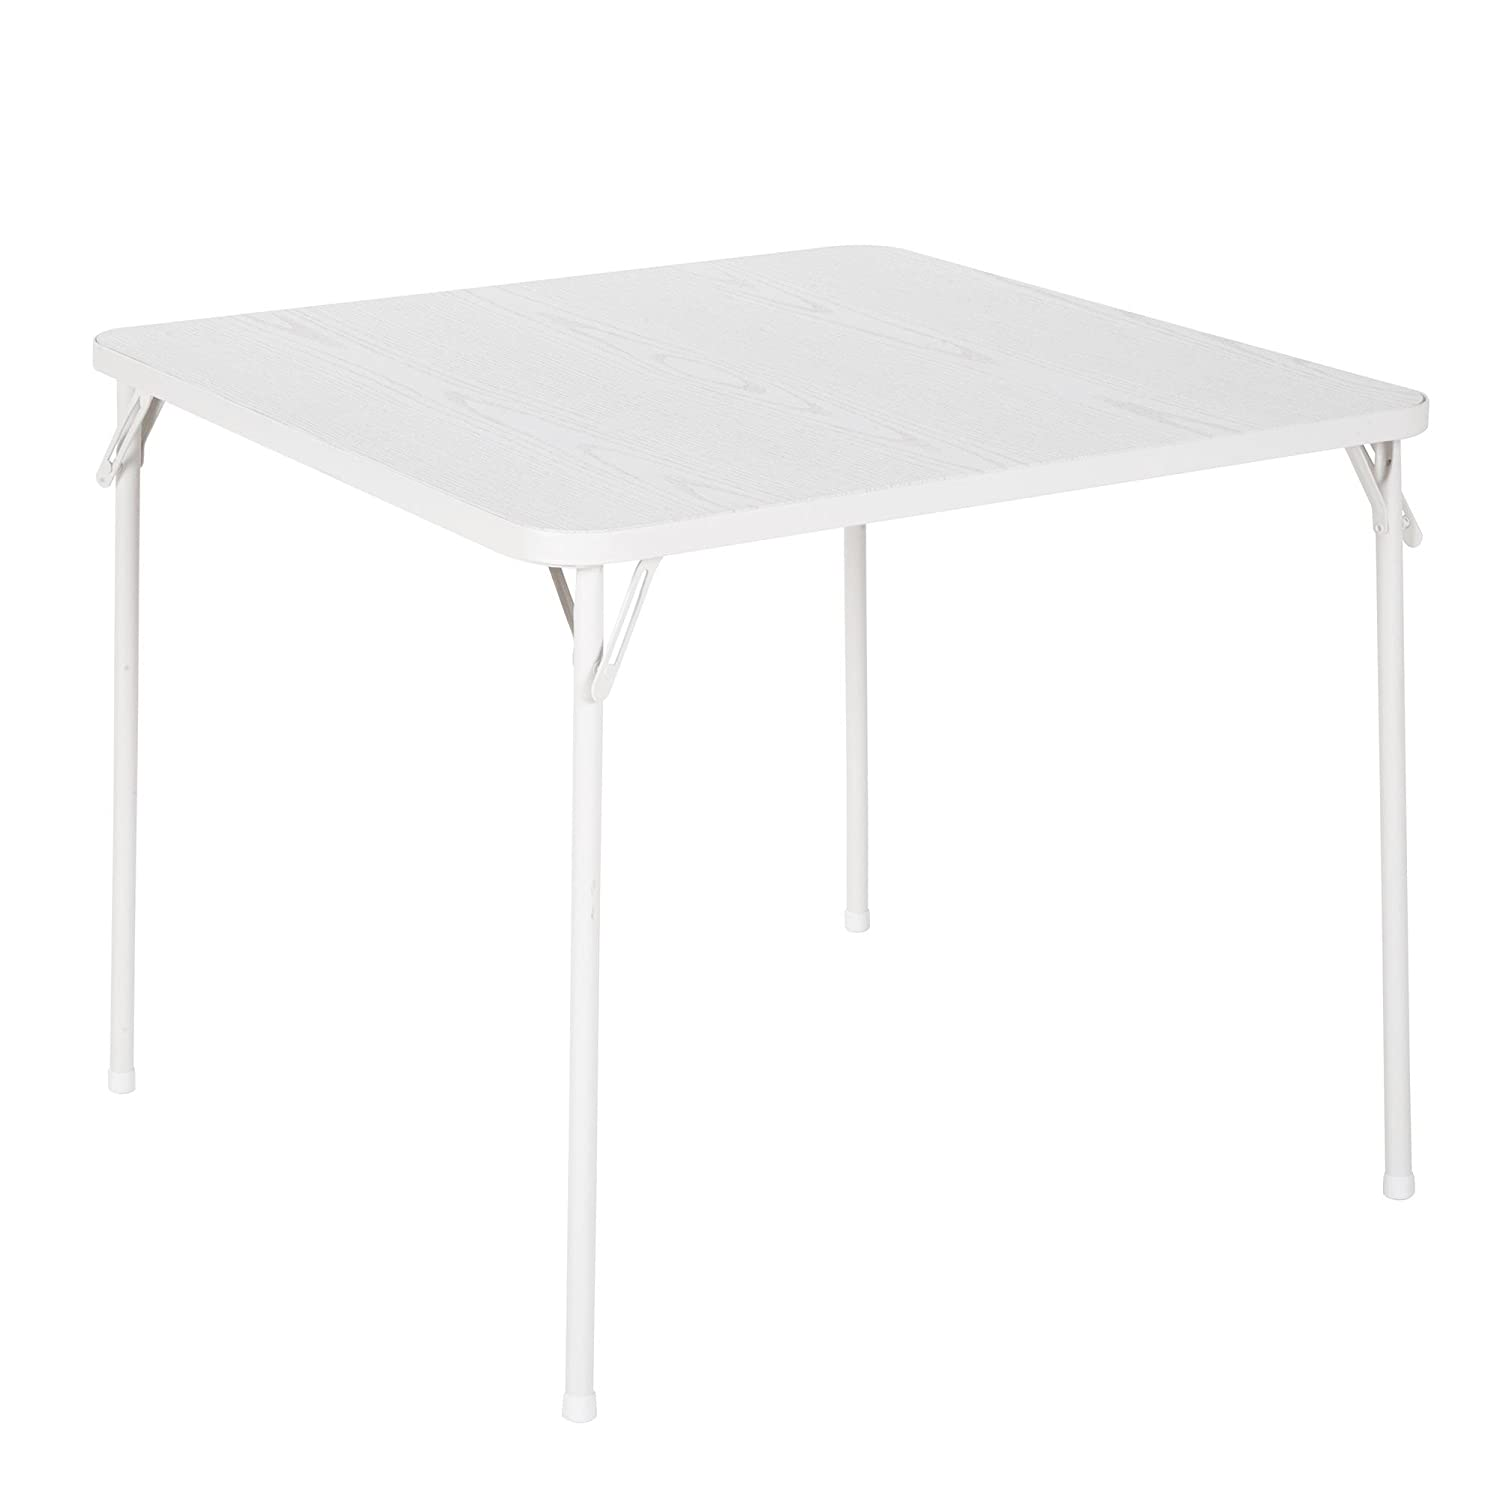 COSCO 34 Square Textured Wood Grain Resin Top Folding Table, Woodgrain White